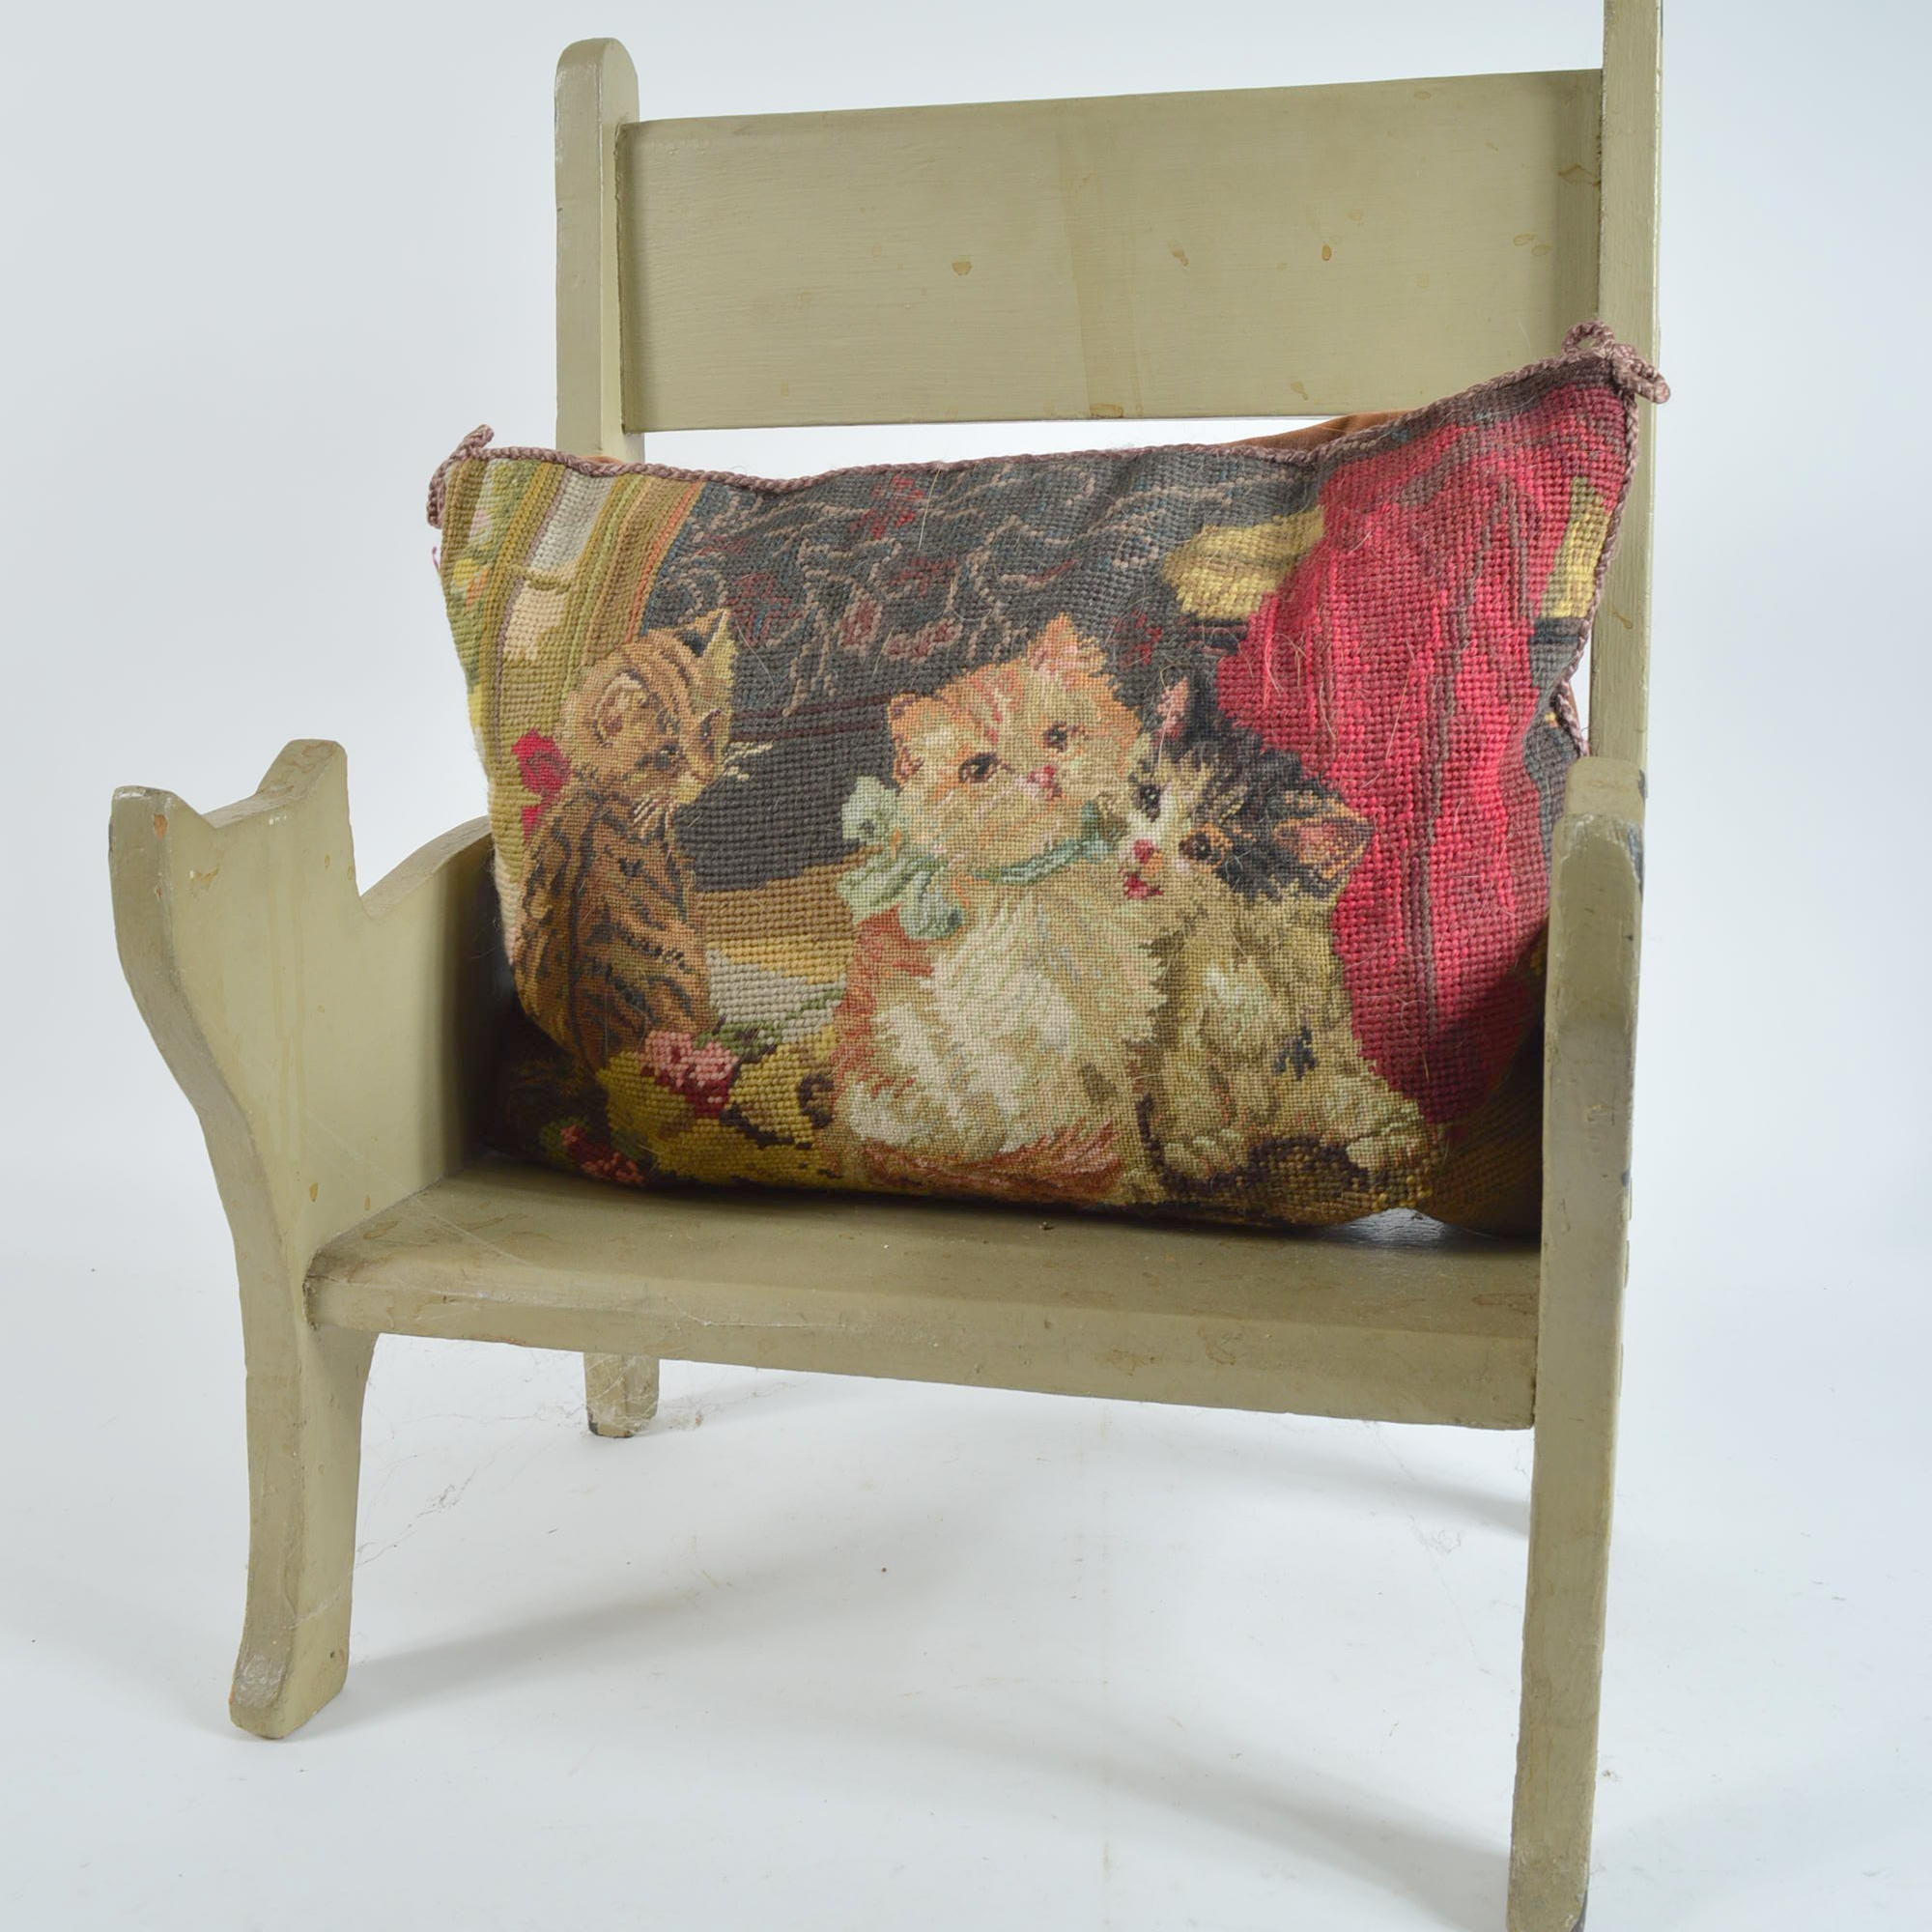 Cat Themed Child's Chair with Needlepoint Pillow